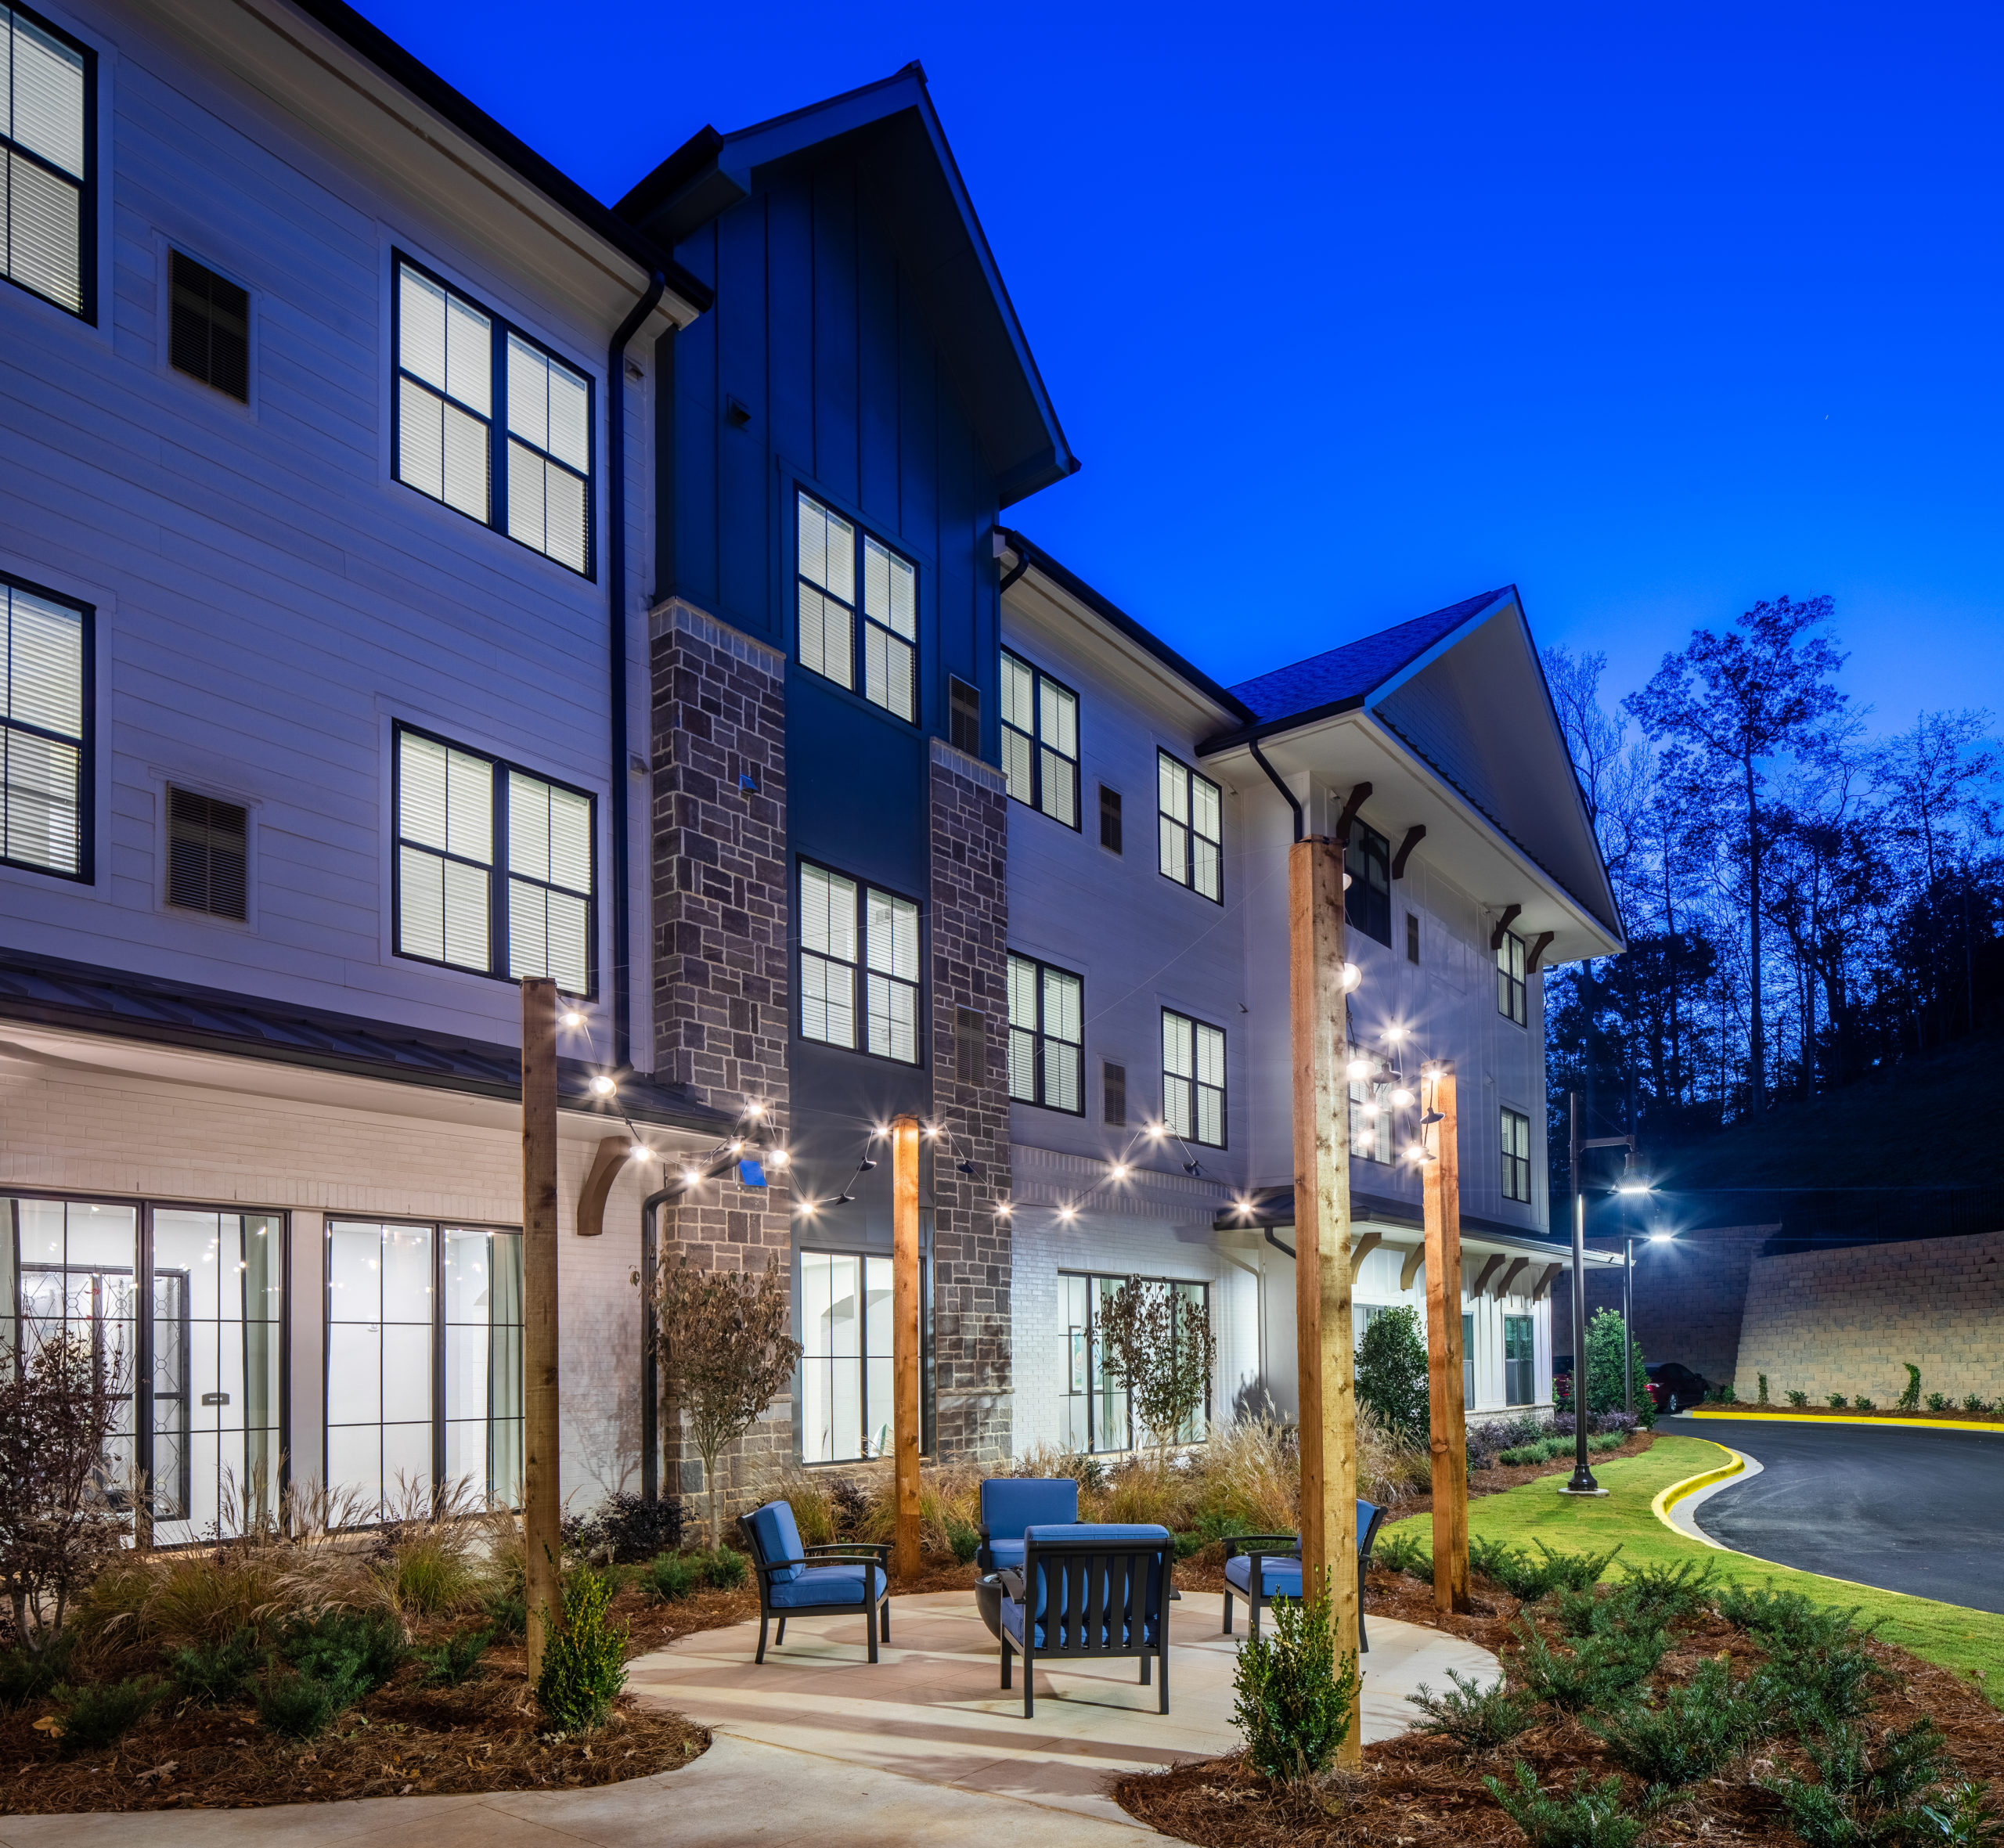 Rear exterior view of Longleaf Liberty Park at night with lights on and vivid blue skies